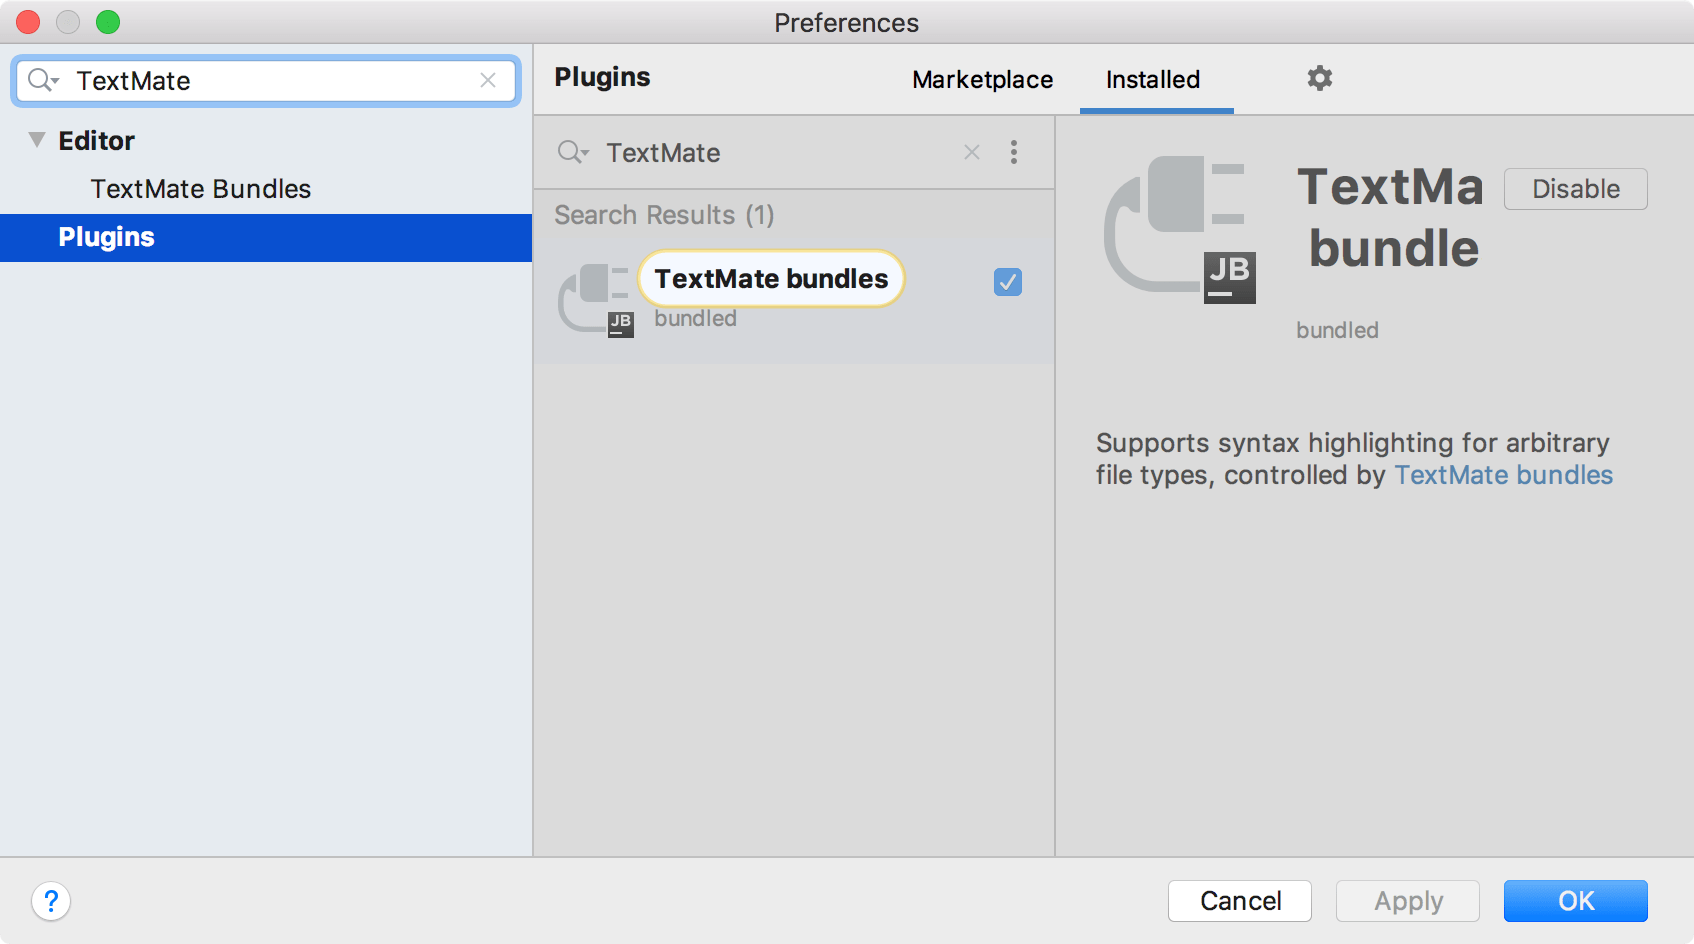 Prebundled TextMate plugin